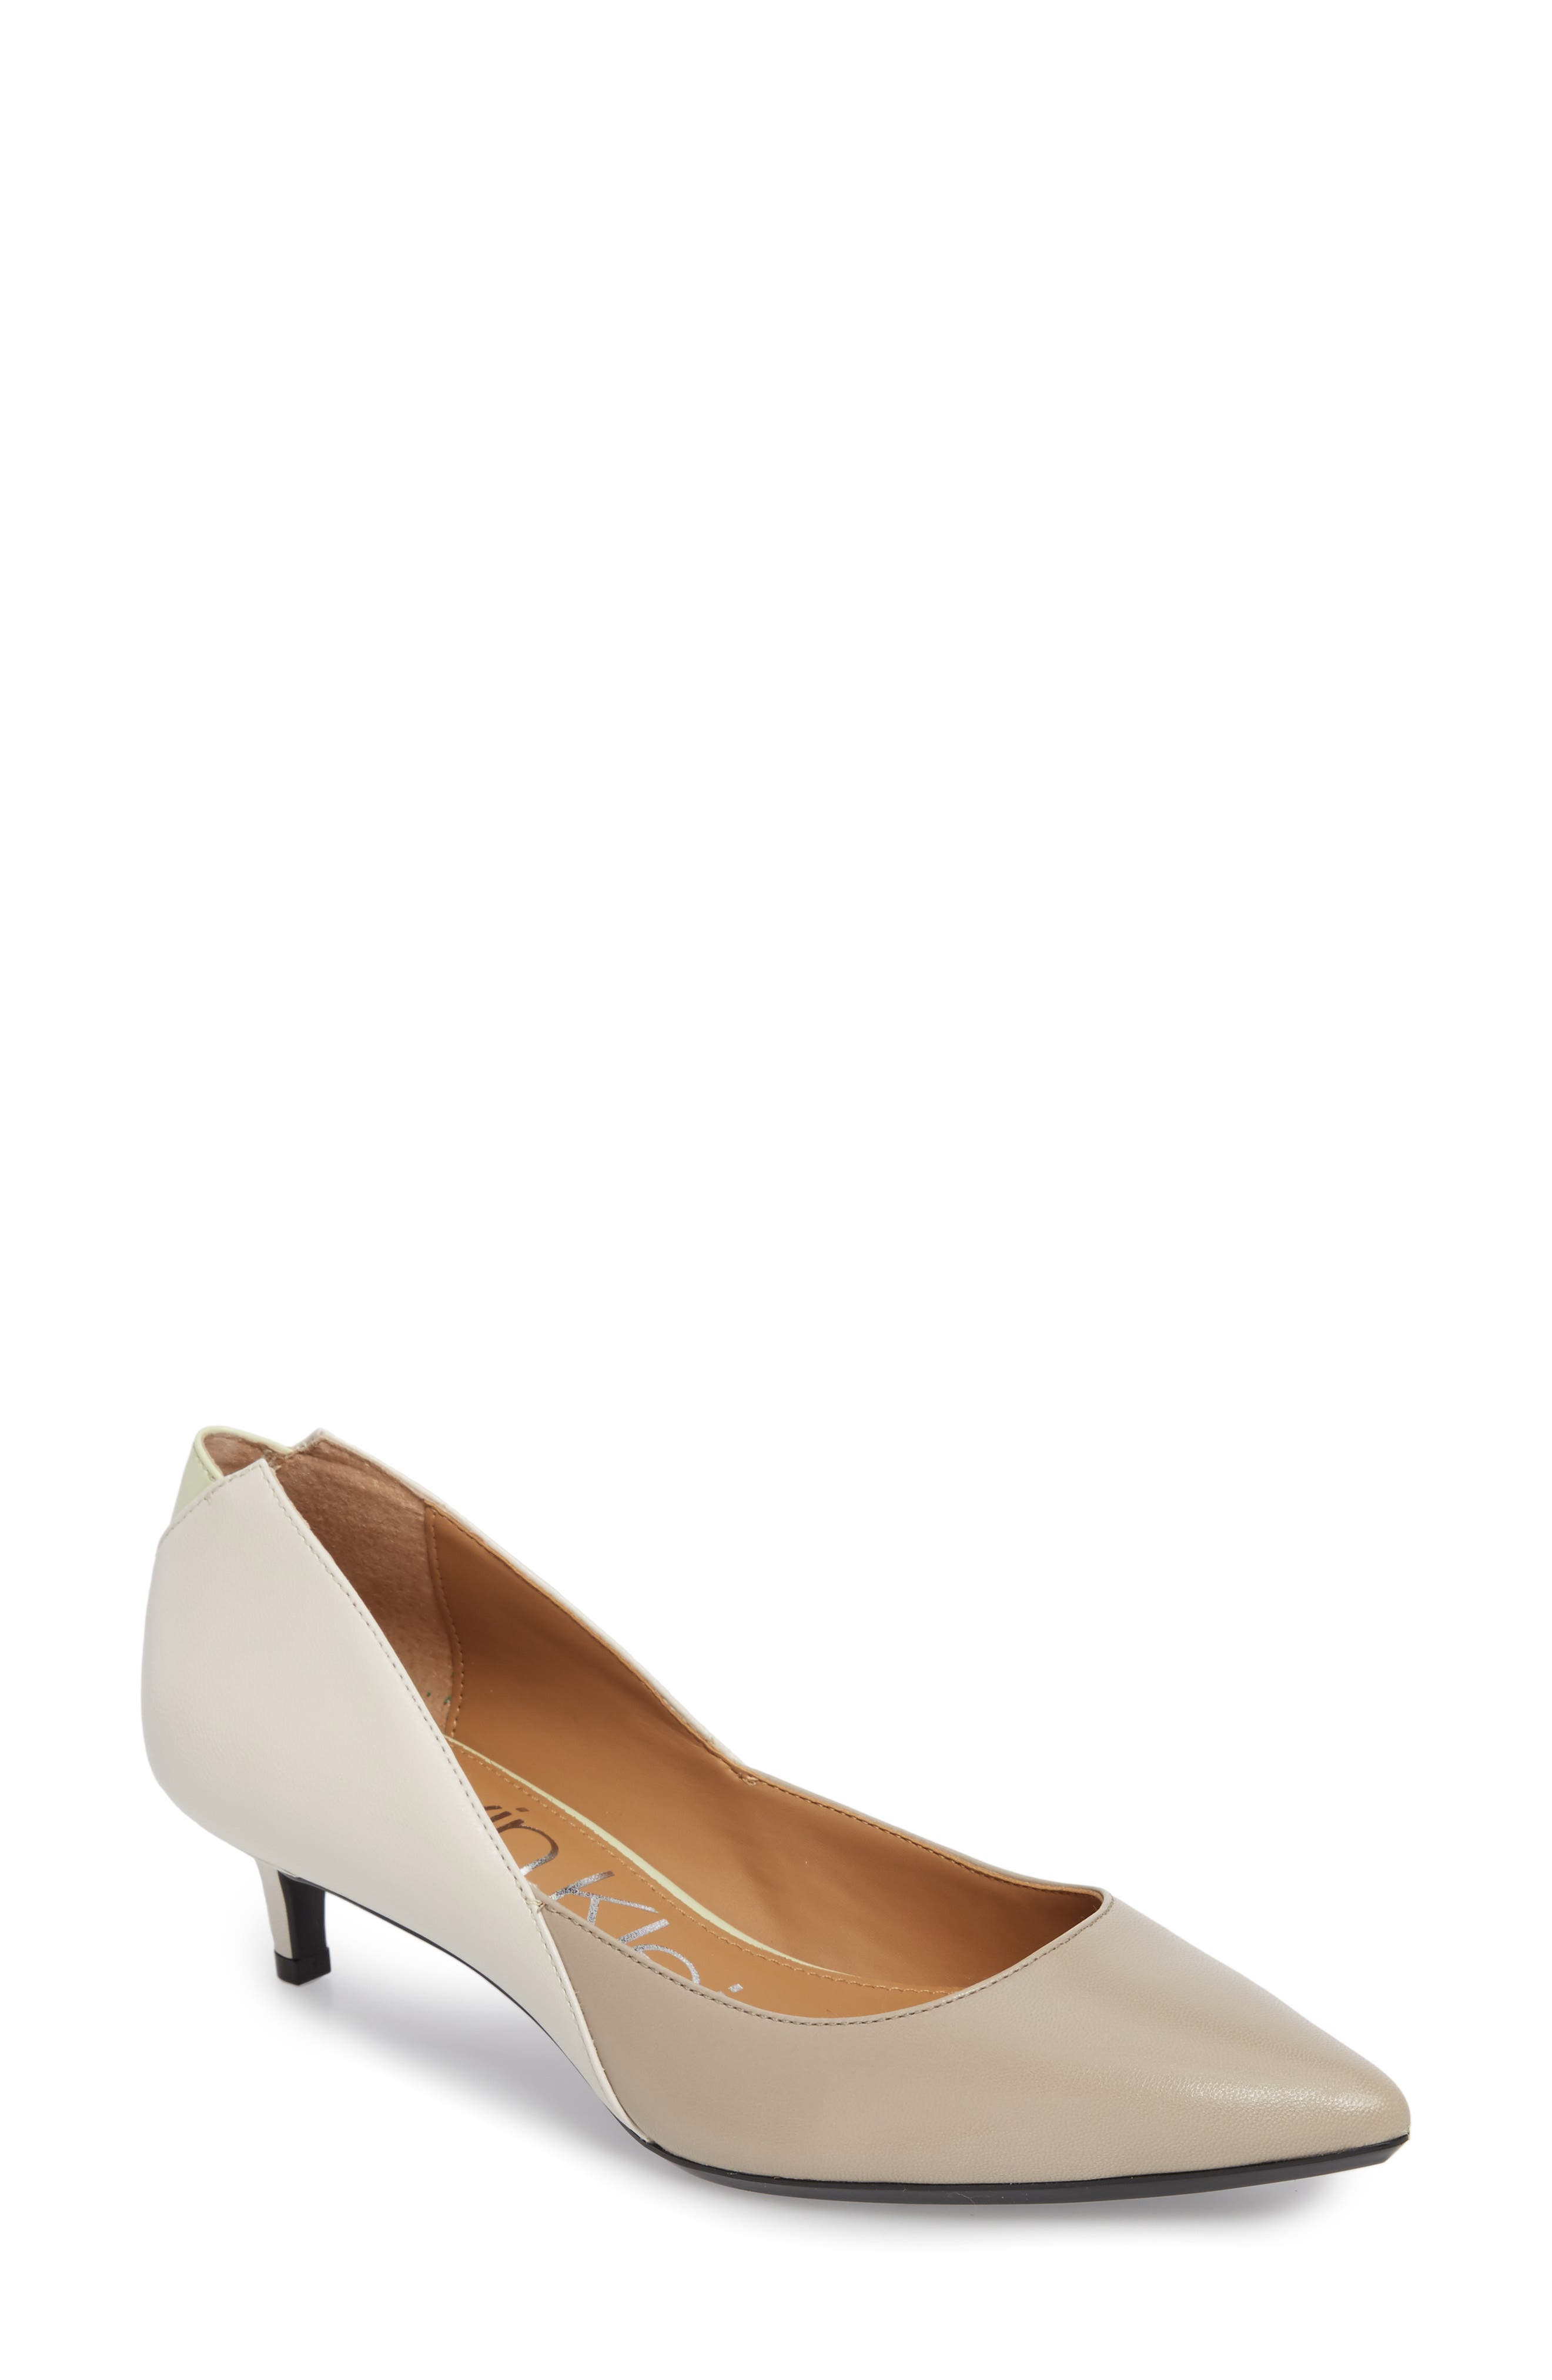 Grayce Pointy Toe Pump,                             Main thumbnail 1, color,                             Clay/ White Leather